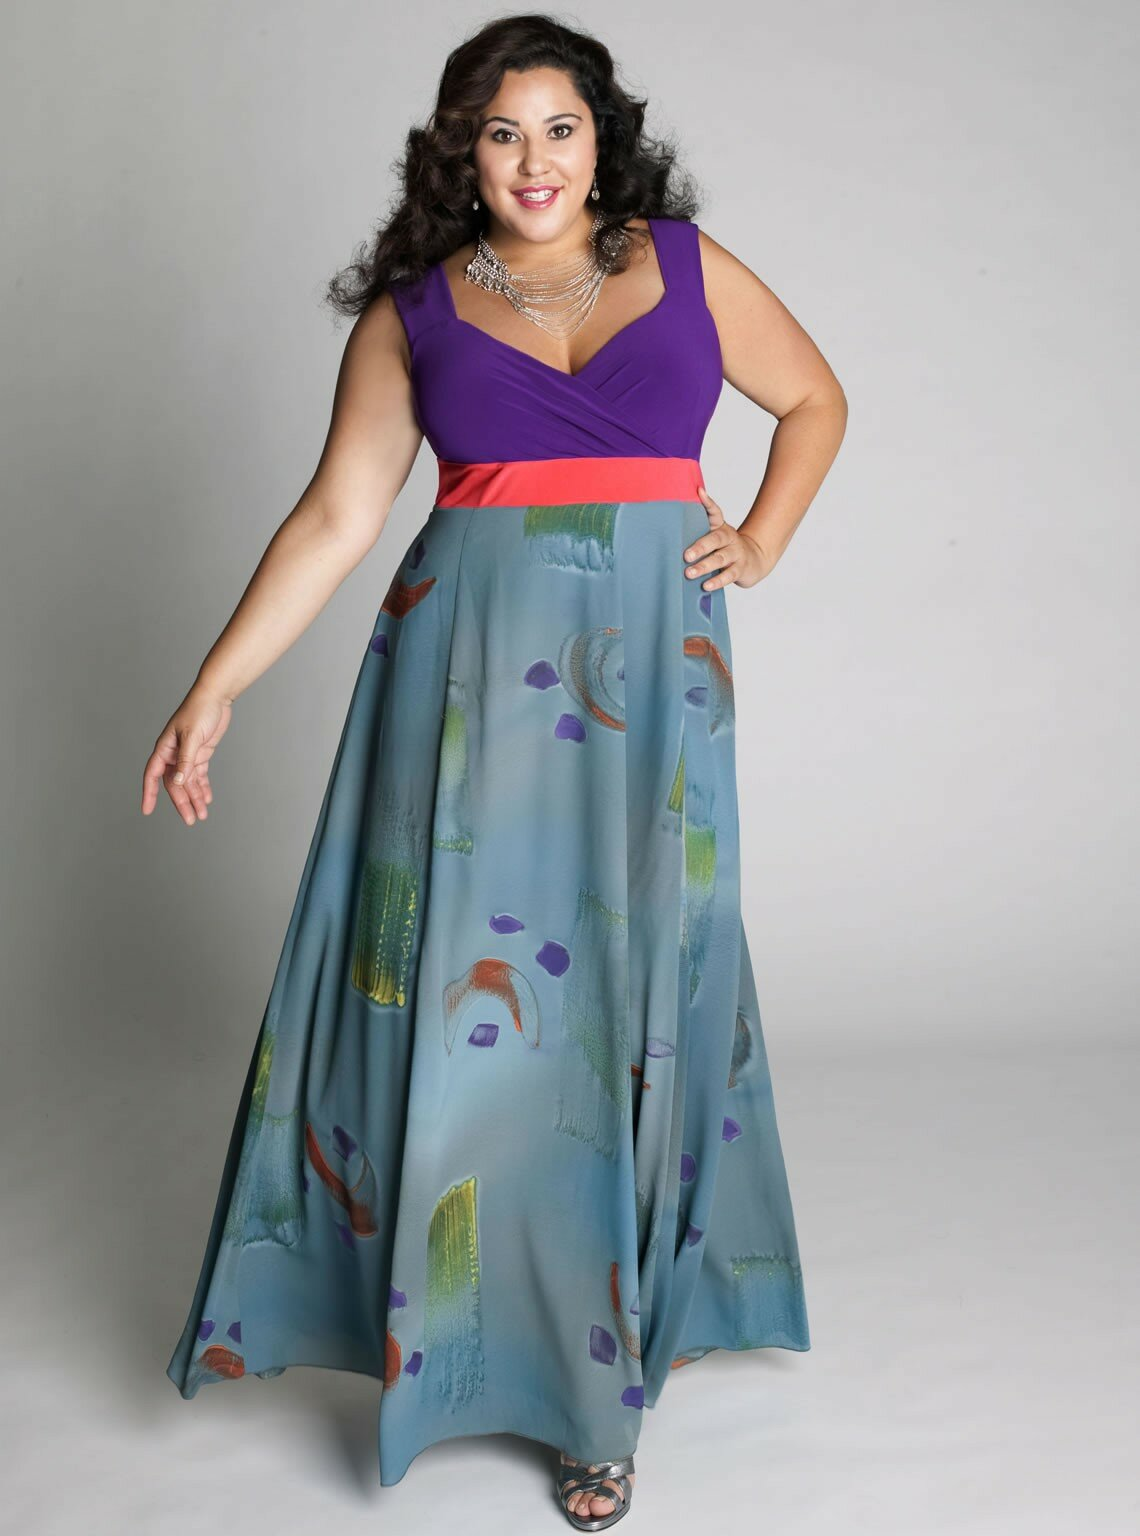 Plus Size Dresses For Weddings Pictures Ideas Guide To